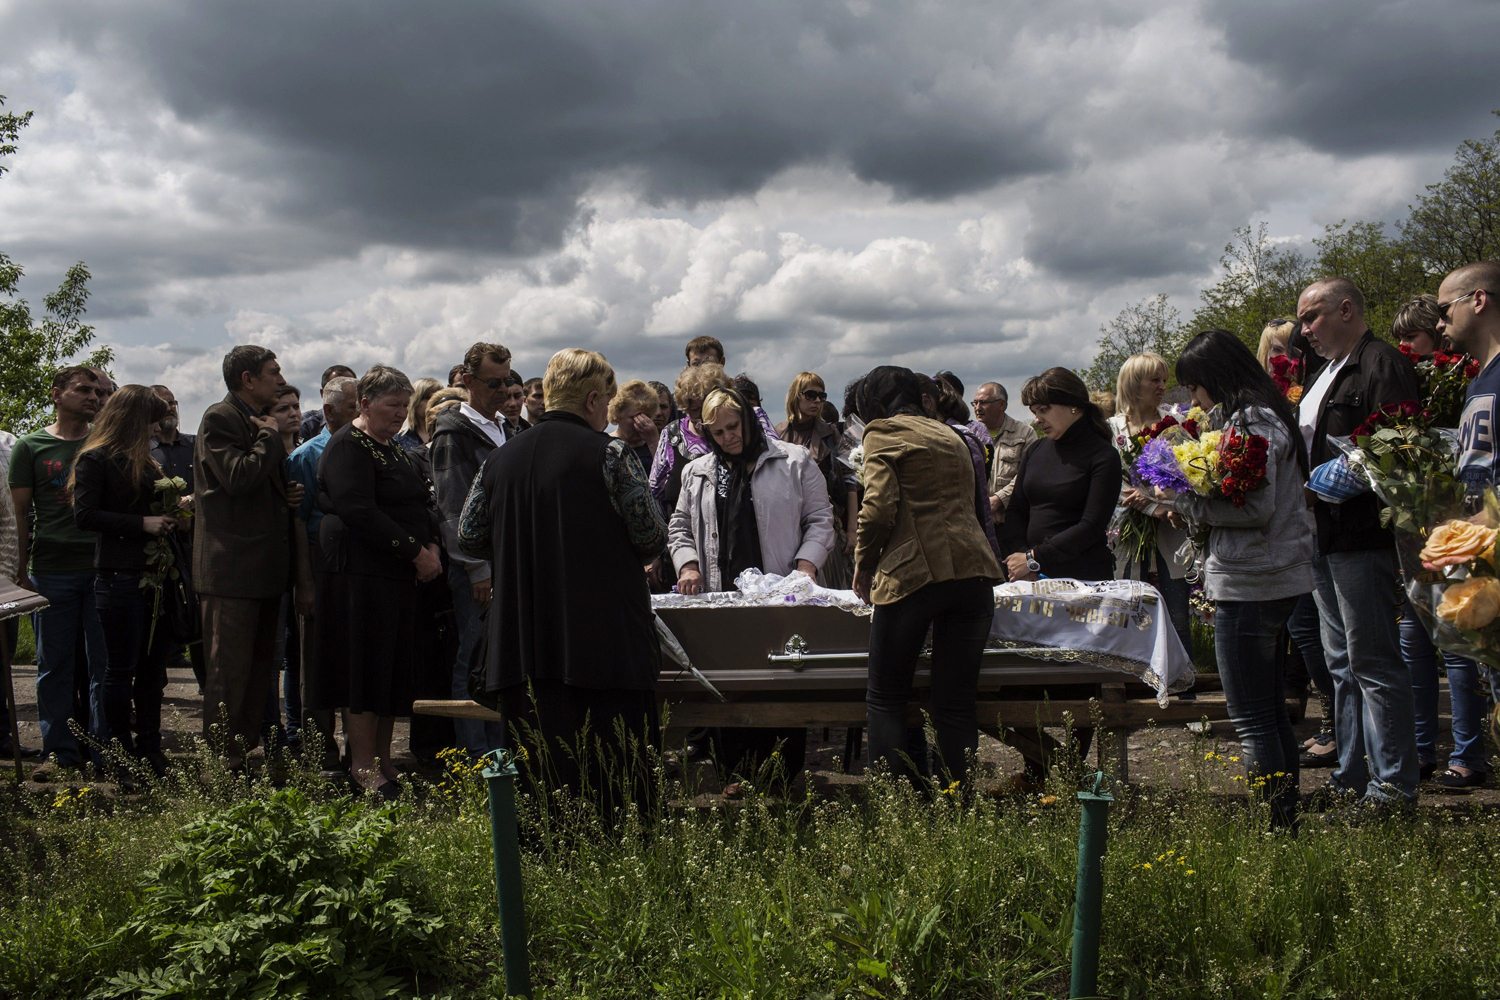 May 13, 2014. Relatives of Hyudych Vadim Yurievichq, including his mother (C), mourn his death during his funeral ceremony, at the Krasnoarmeysk cemetery, eastern Ukraine.